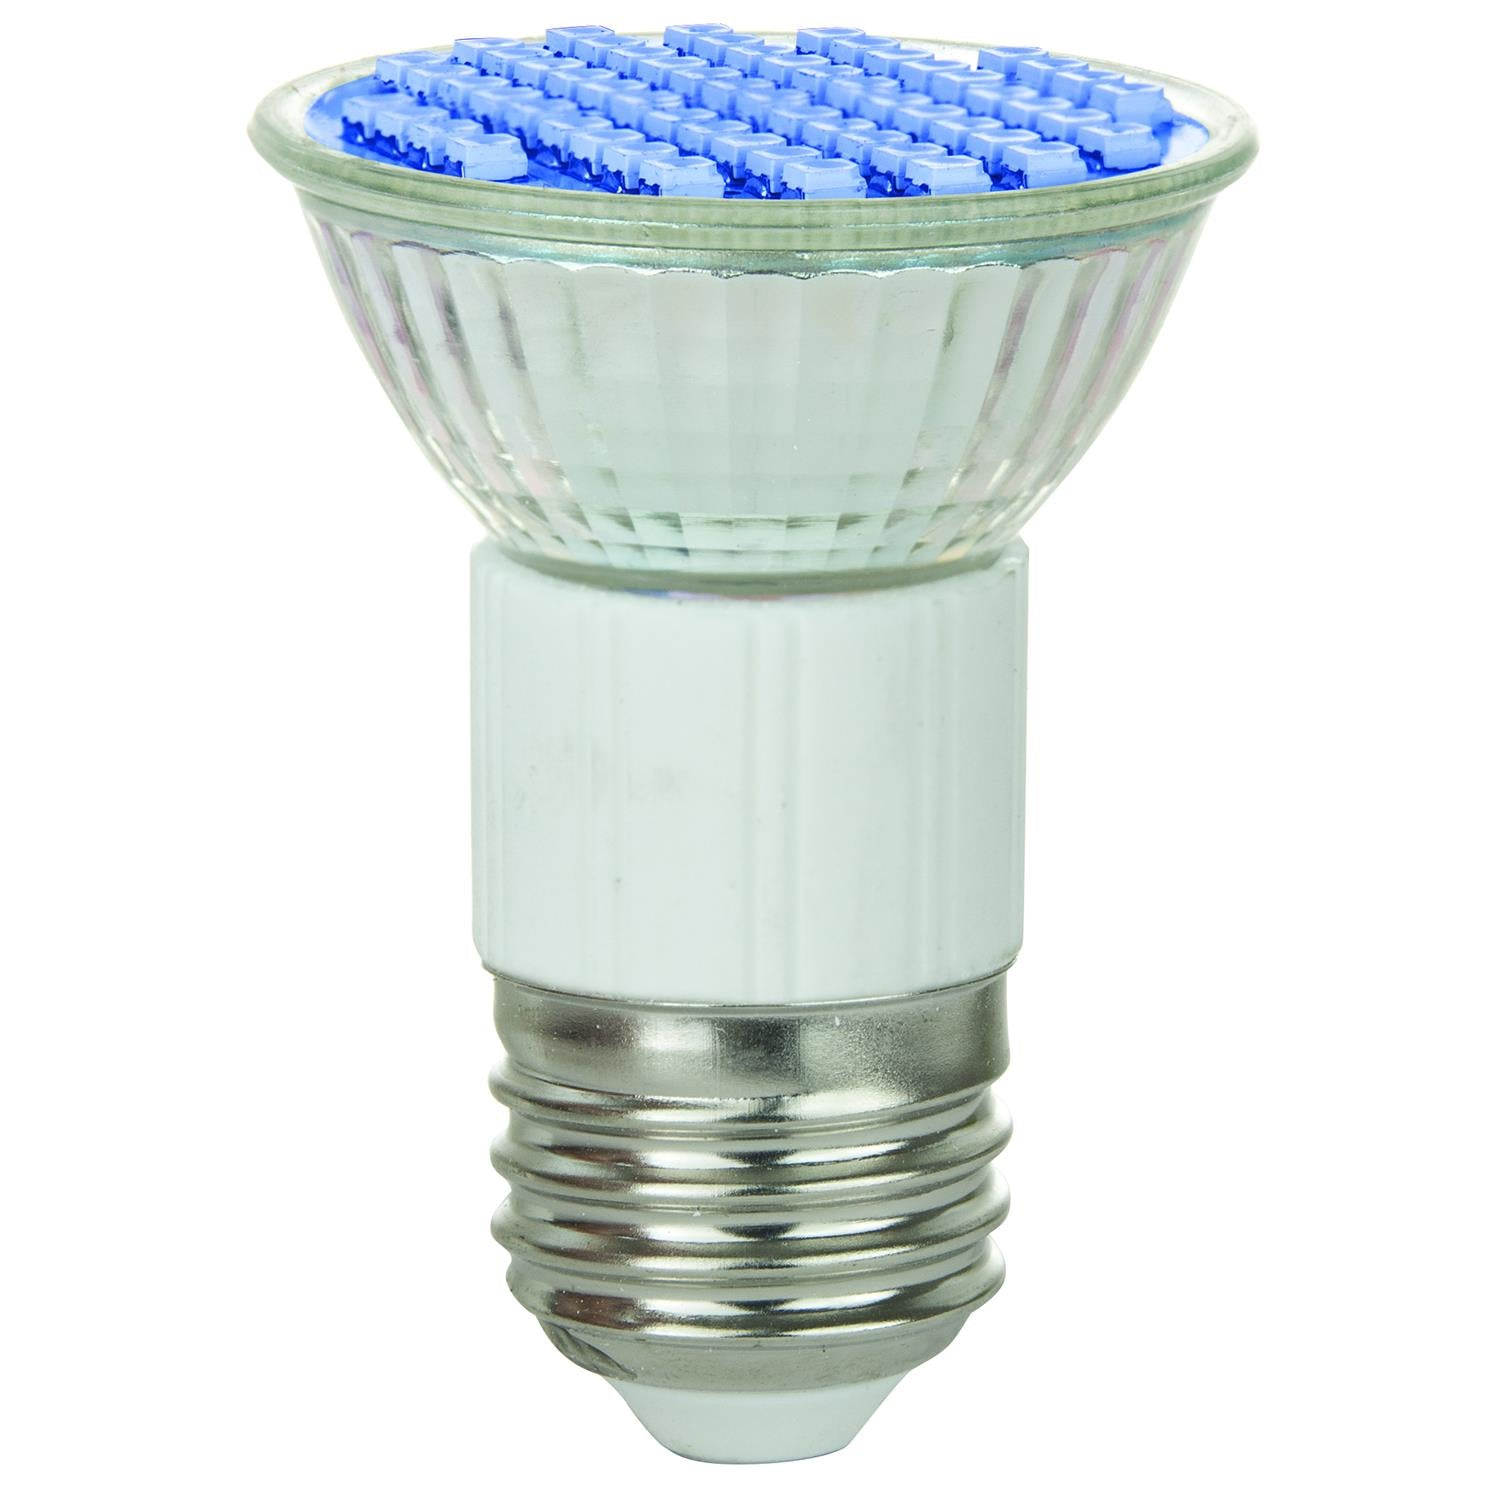 SUNLITE 80195-SU LED JDR MR16 Colored Mini Reflector 2.8w Light Bulb Blue